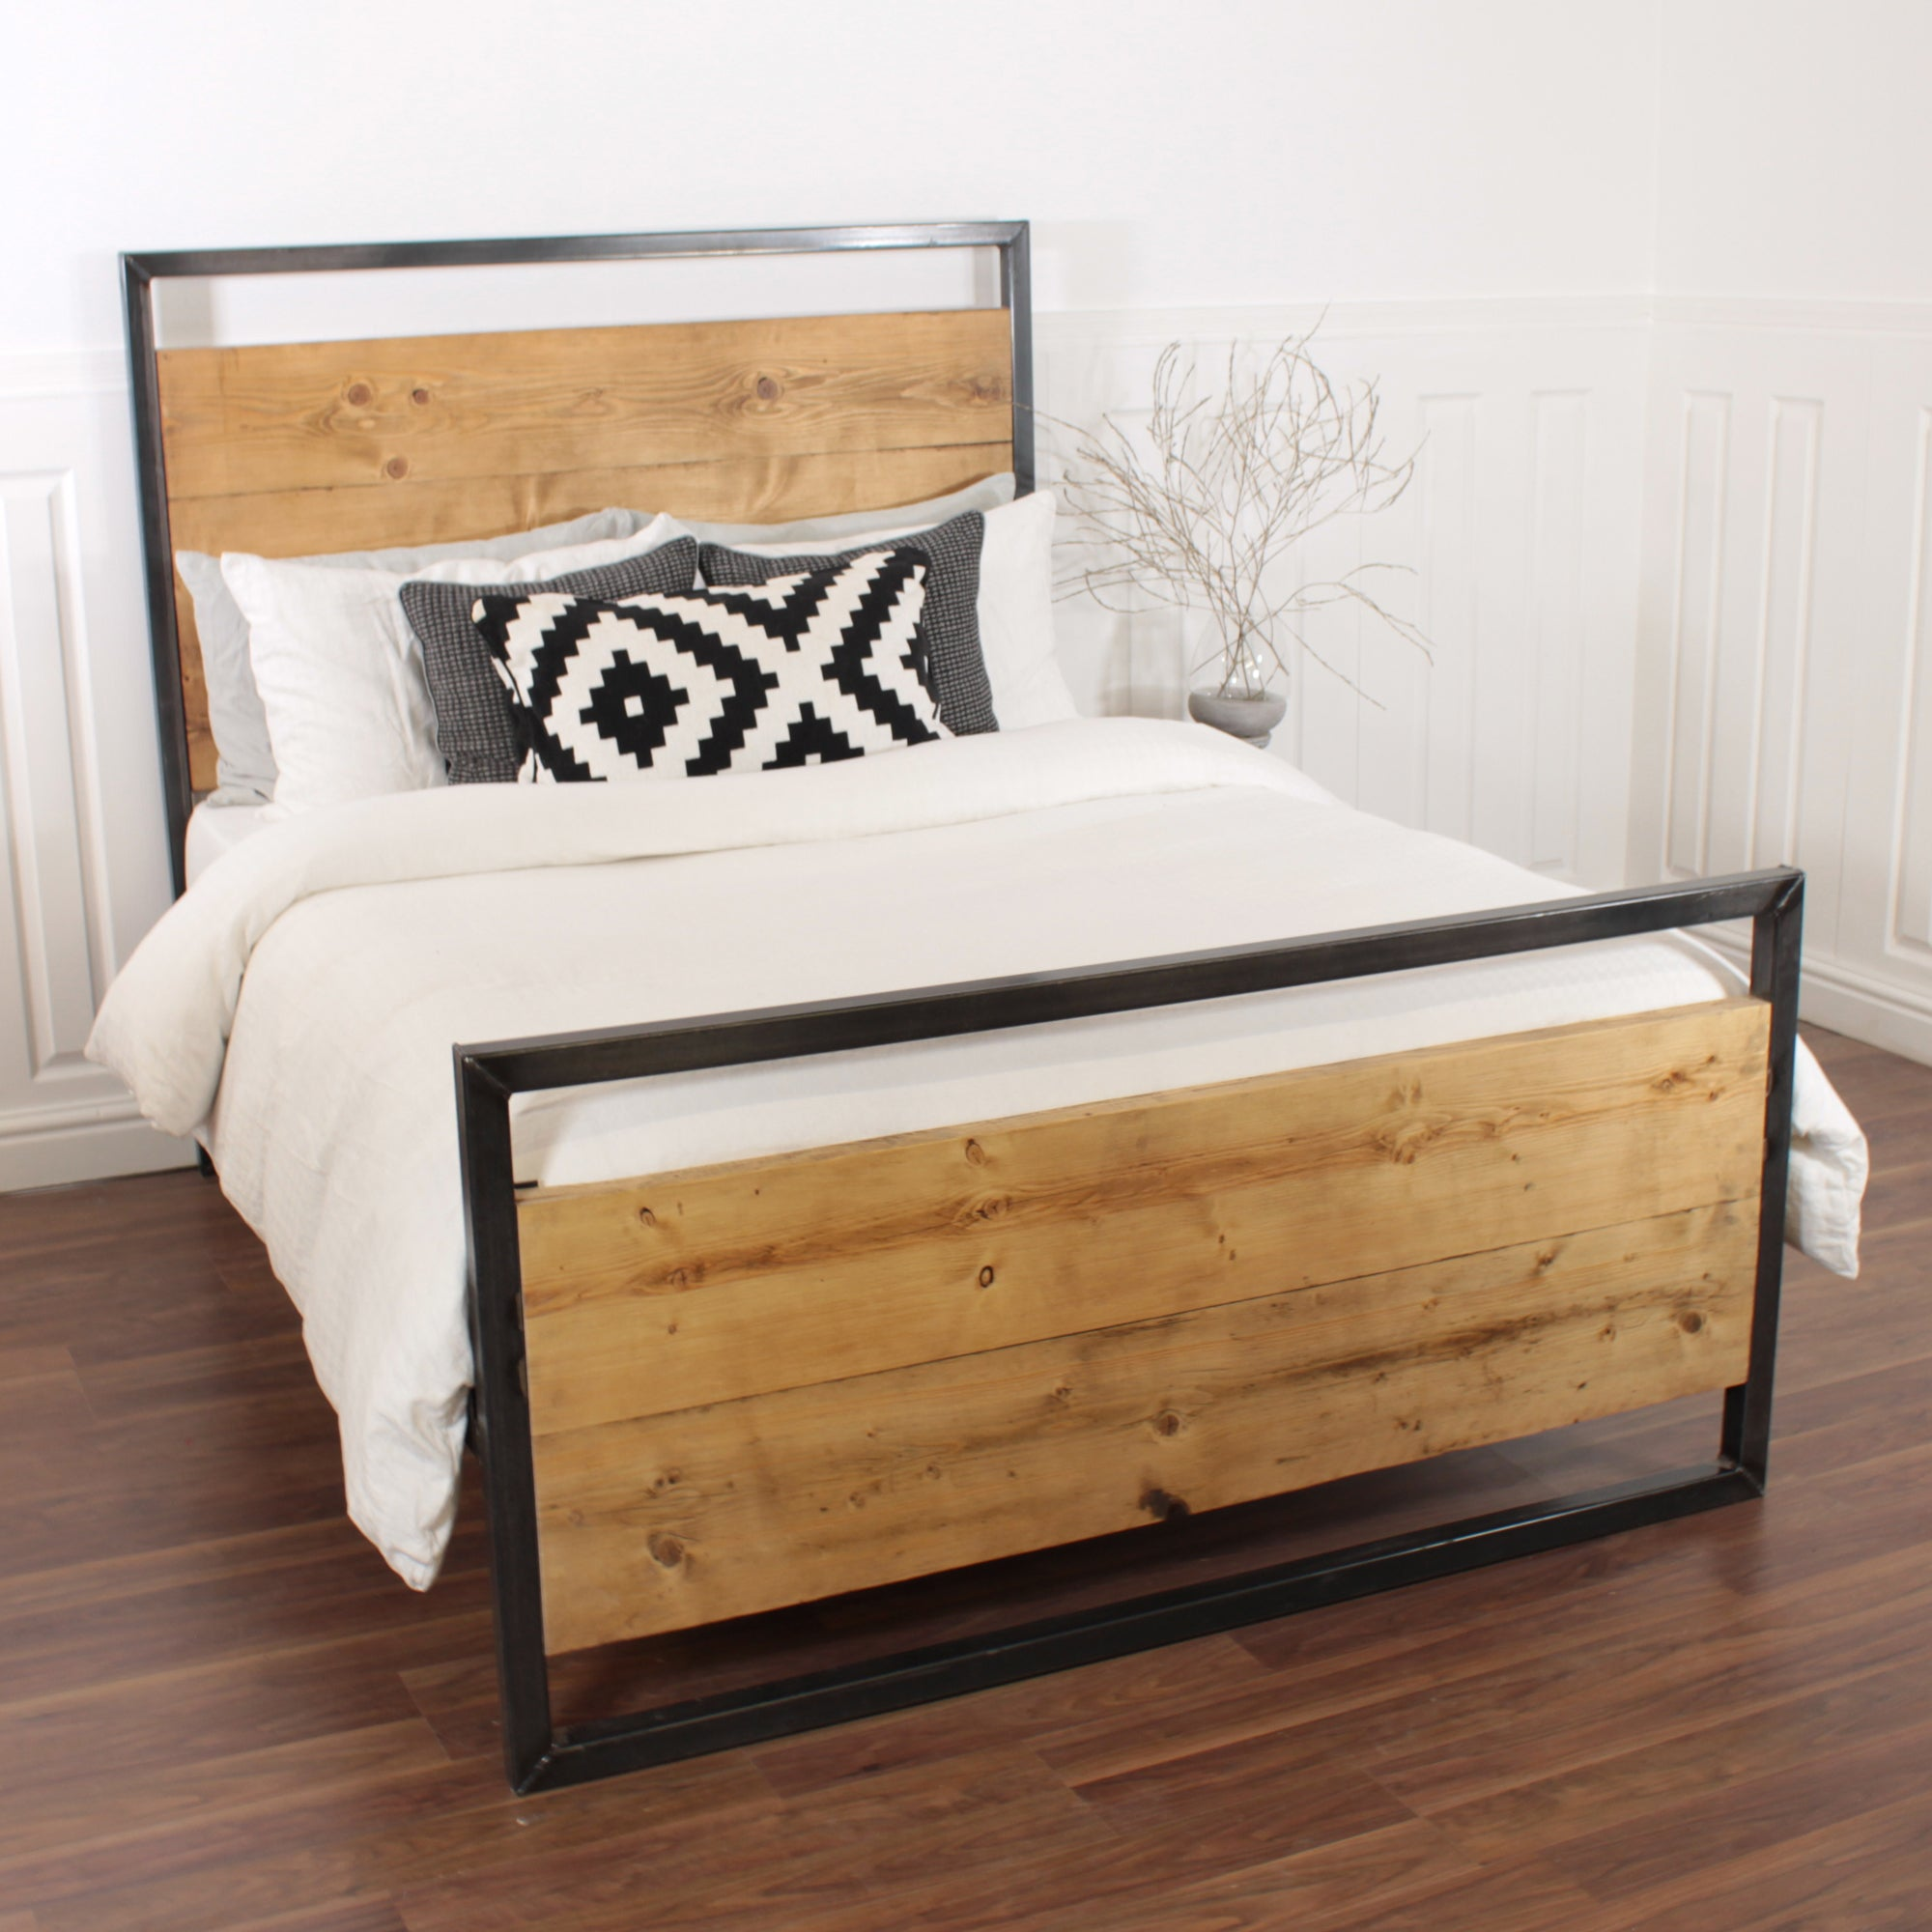 Industrial Bed Handmade Wooden Steel Double Single Frame King Reclaimed Wood Pine Solid Farmhouse Oak Country Metal